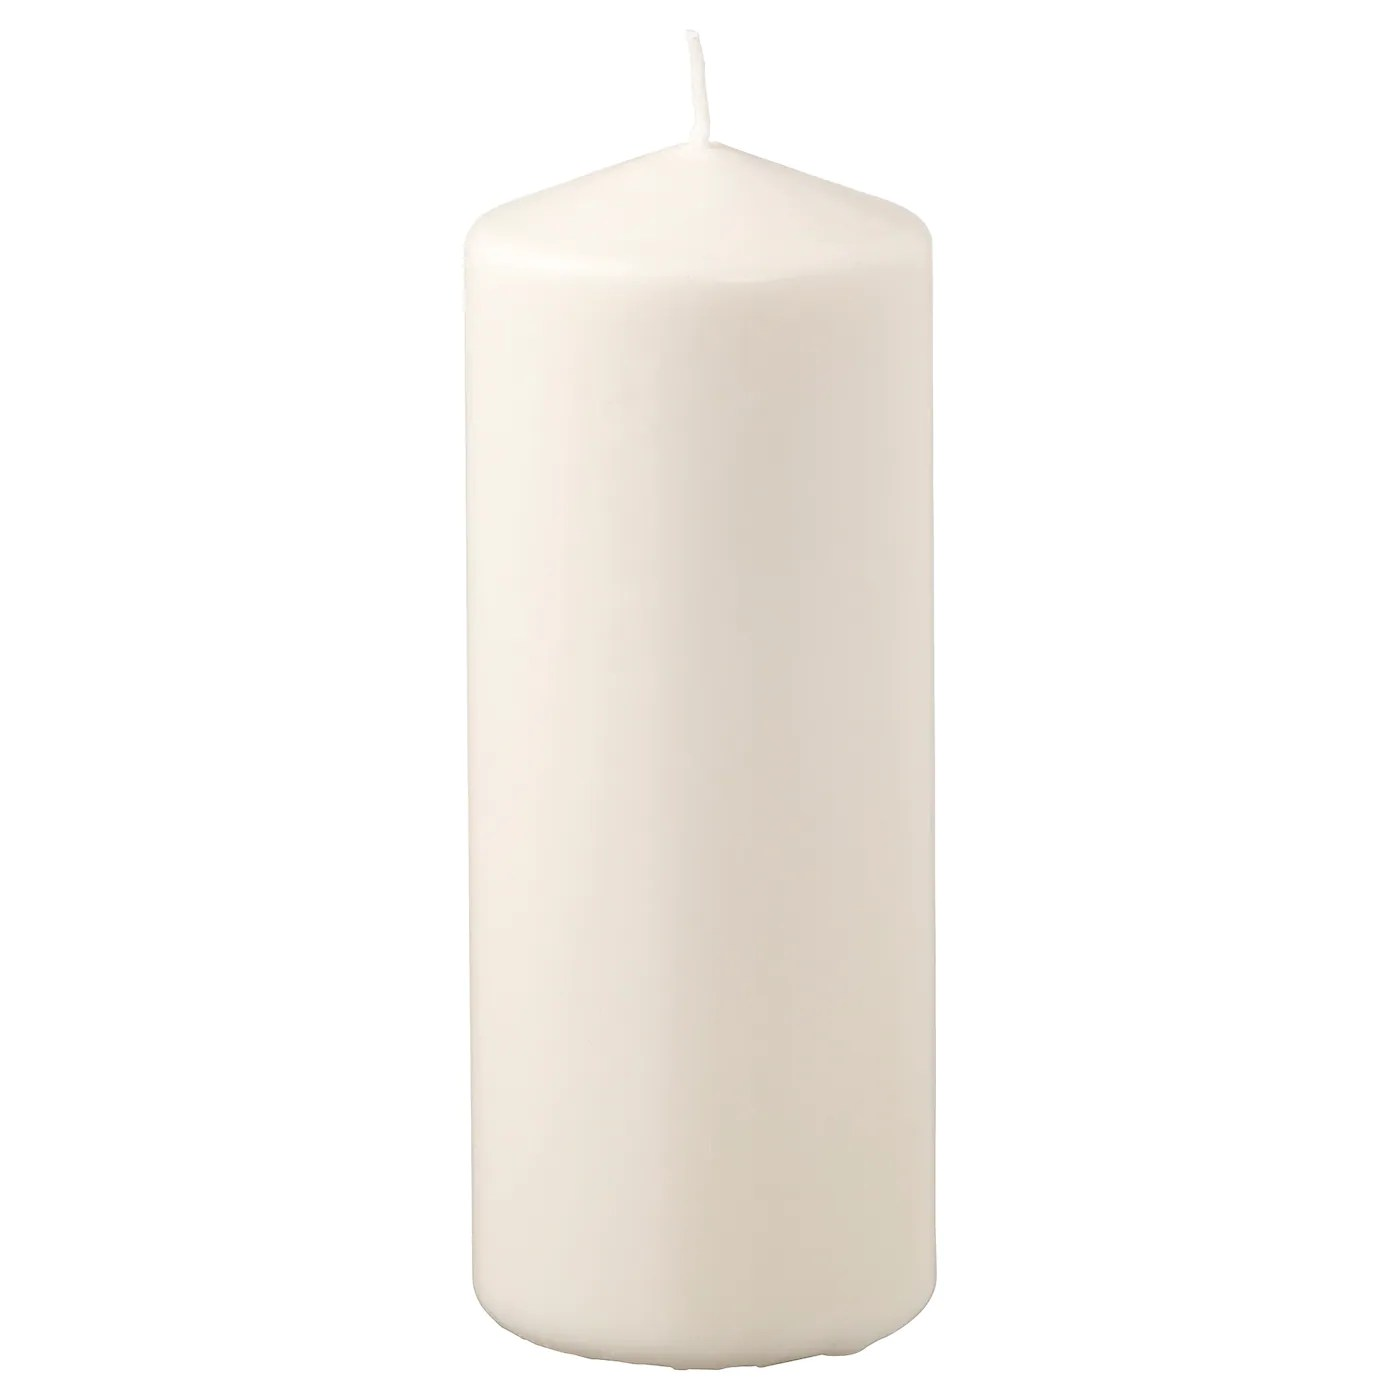 Ikea Küche 20cm Fenomen Unscented Block Candle Natural